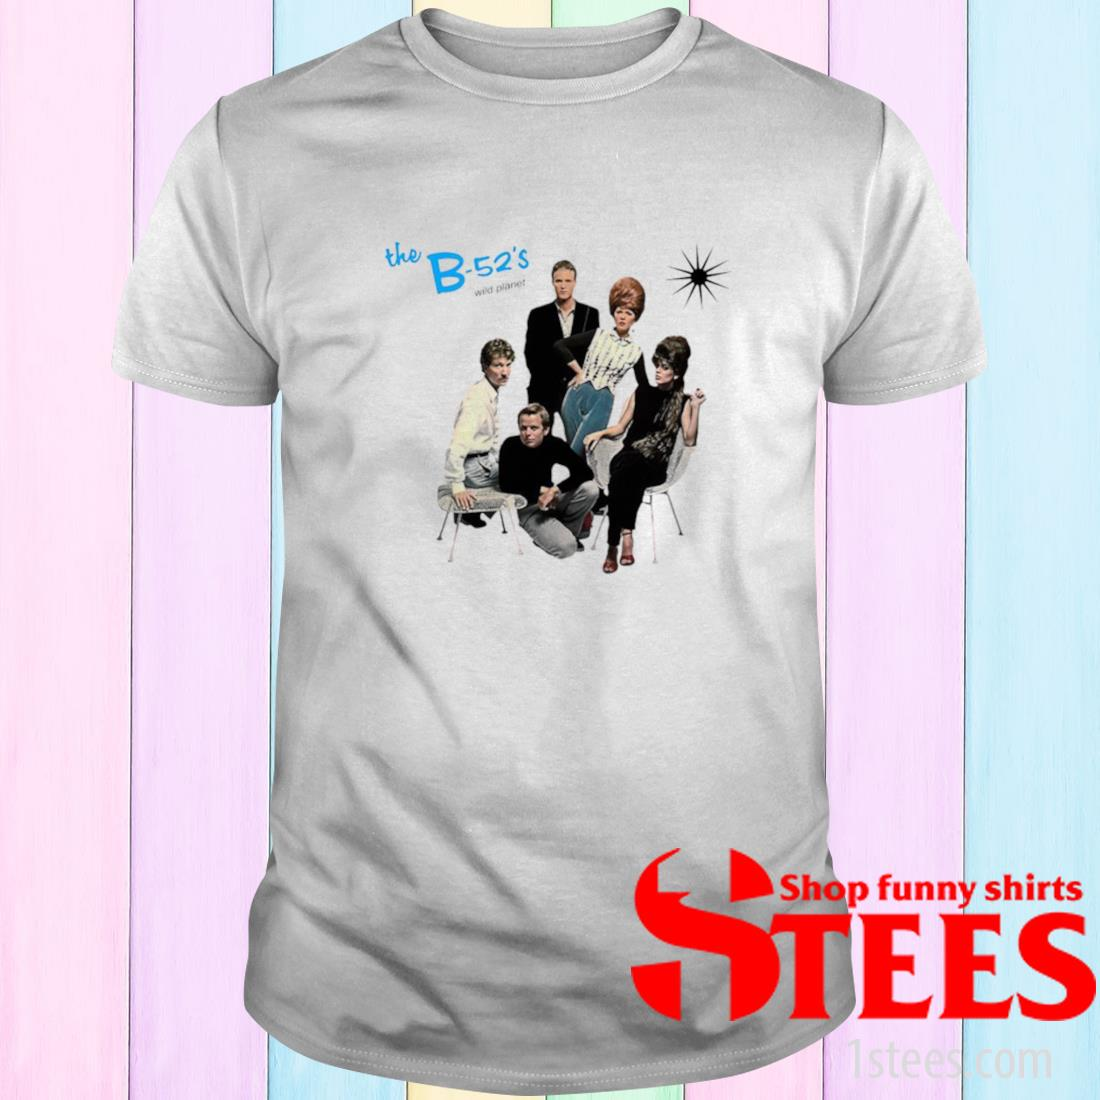 The B 52s Wild Planet Shirt